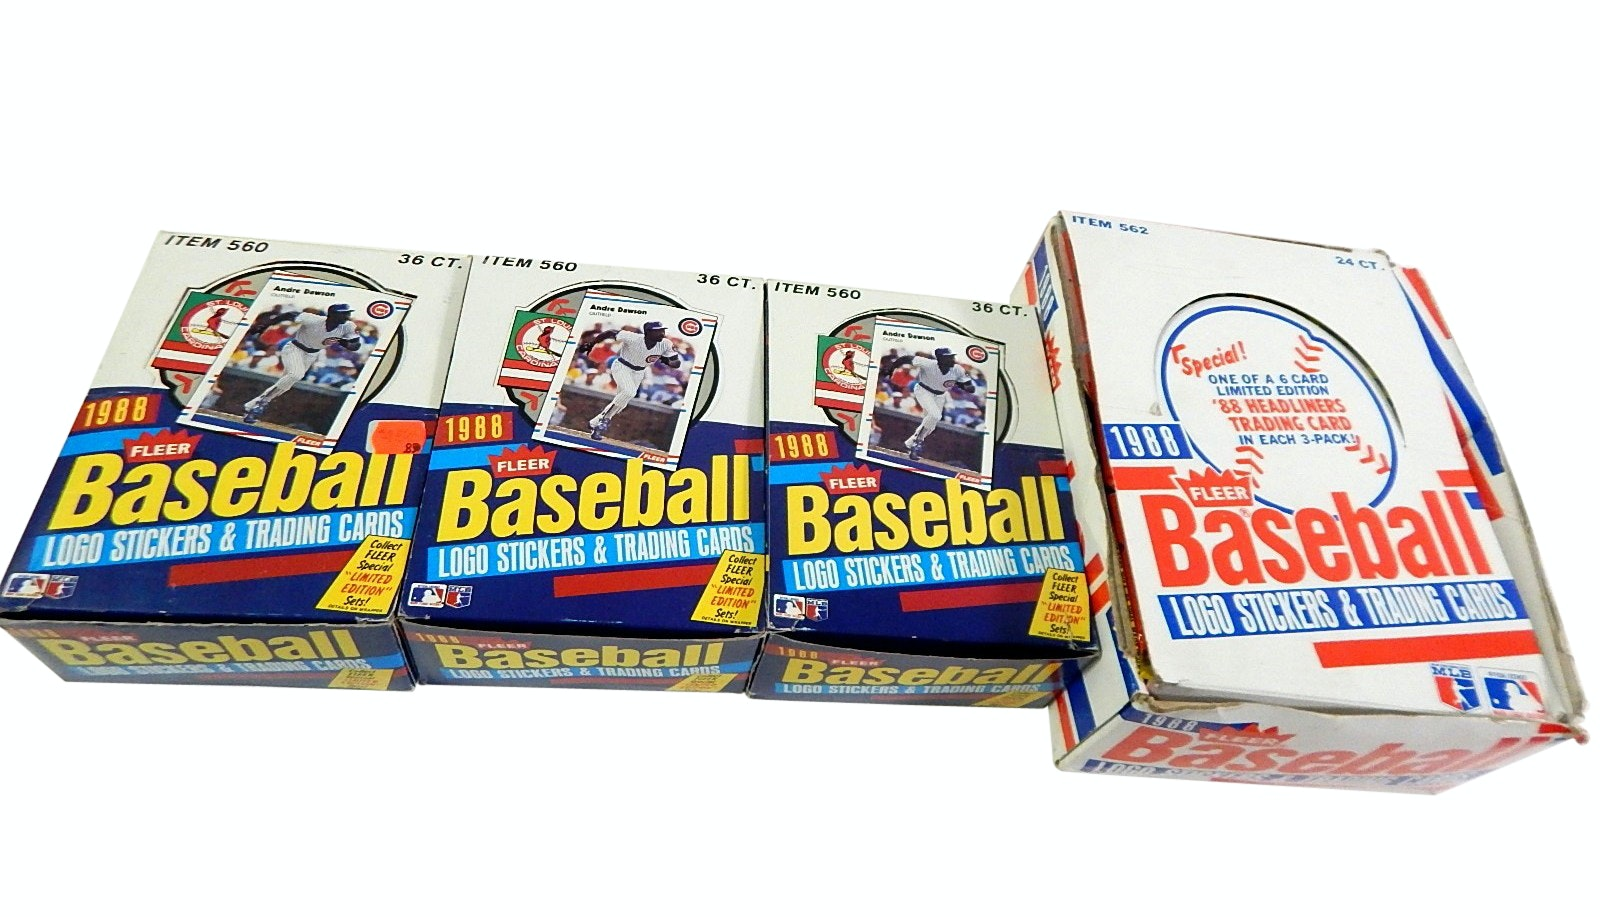 Three Boxes of Unopened 1988 Fleer Wax Packs and One Box of Unopened 1988 Trios